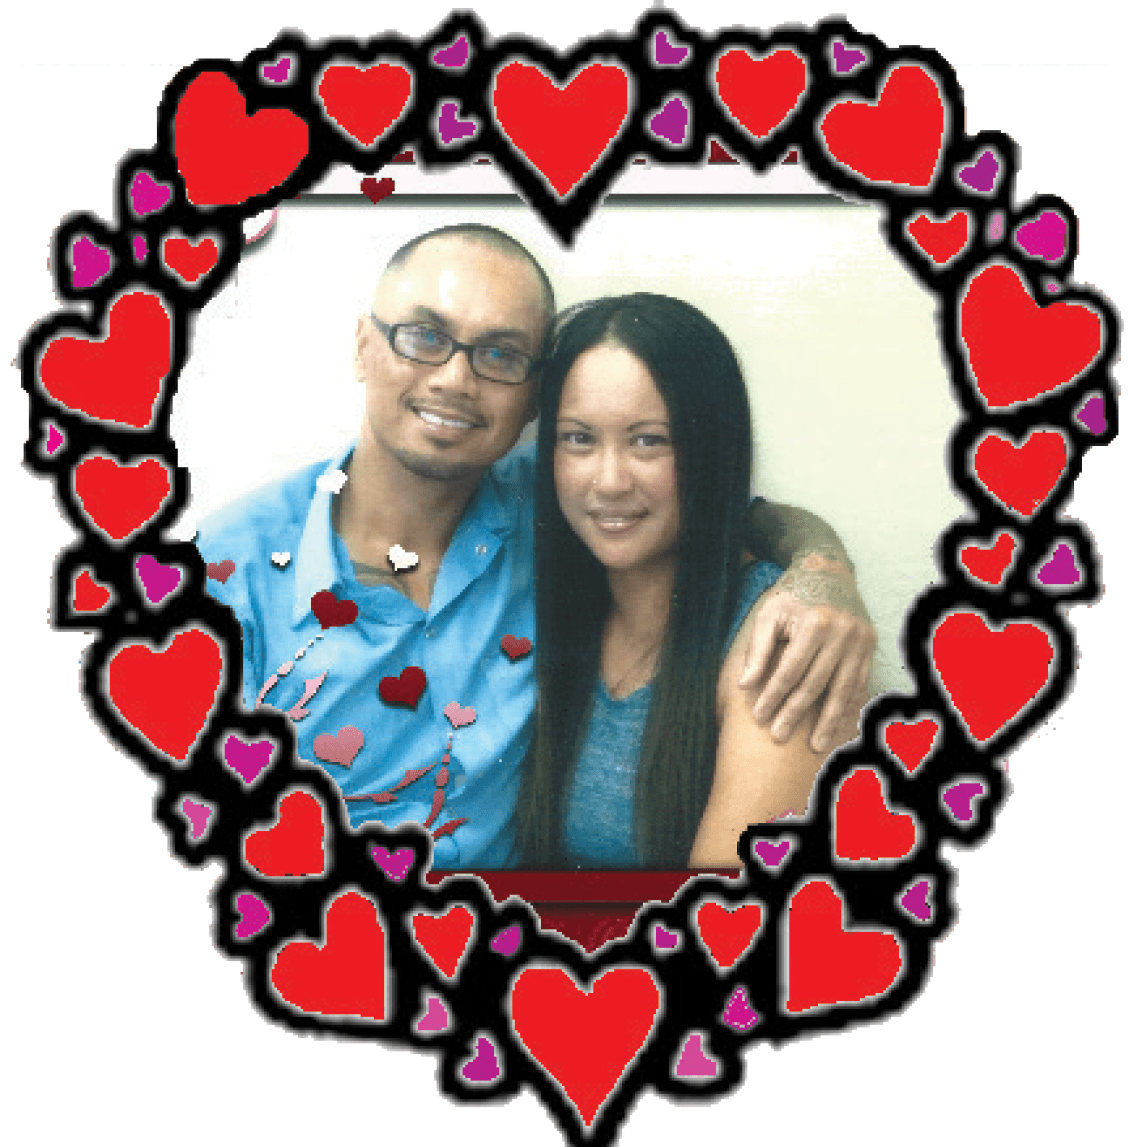 To my loving wife Renee; When I say I love you more, I don't mean I love you more than you love me. I mean I love you more than the bad days ahead of us. I love you more than any fight we will ever have. I love you more than the distance between us. I love you more than any obstacle that could try and come between us. I love you the most! Romeo and Renee Bacos